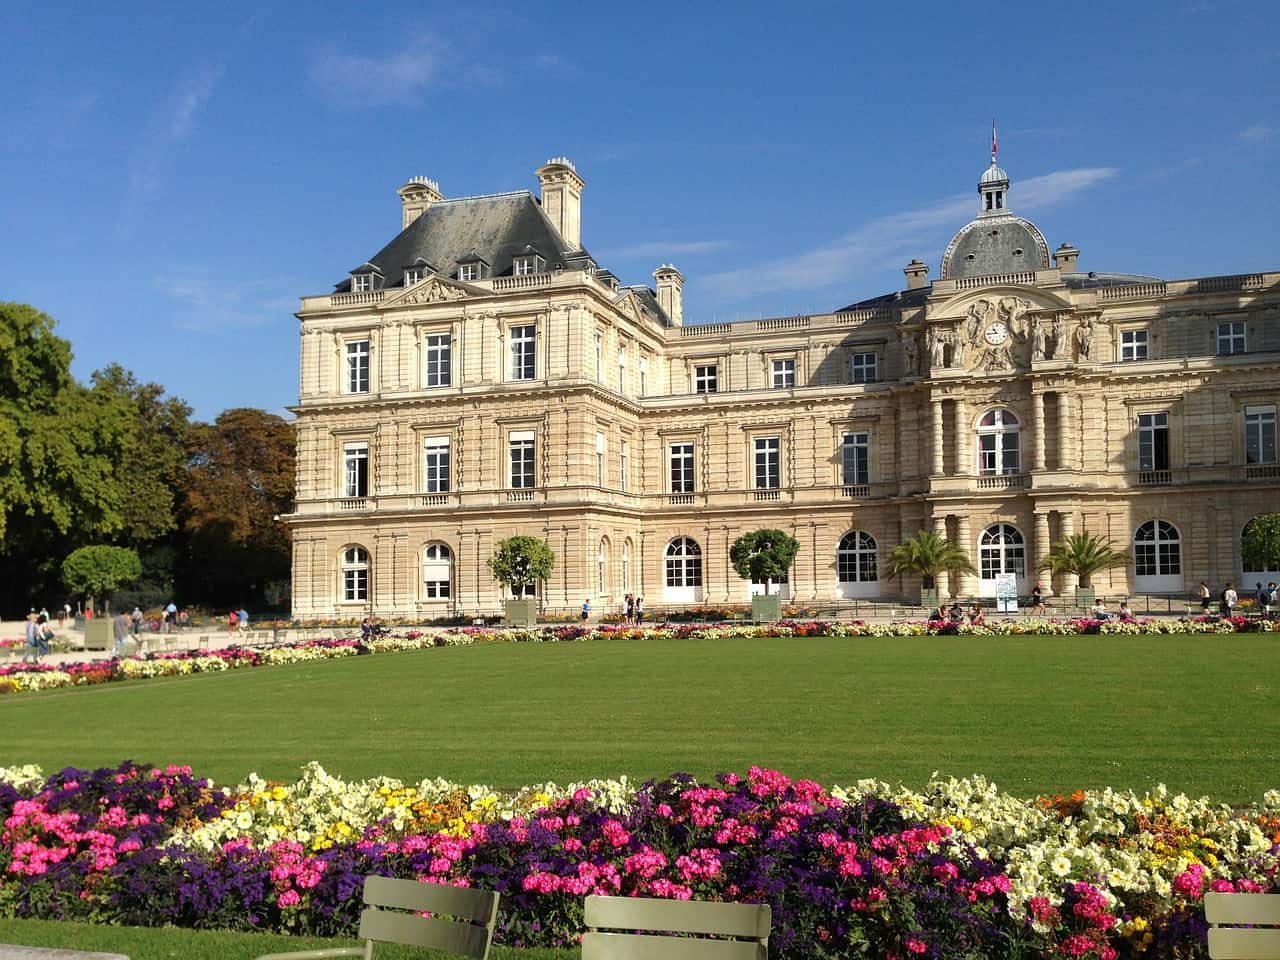 Luxembourg Garden - Best Places to Visit in Paris